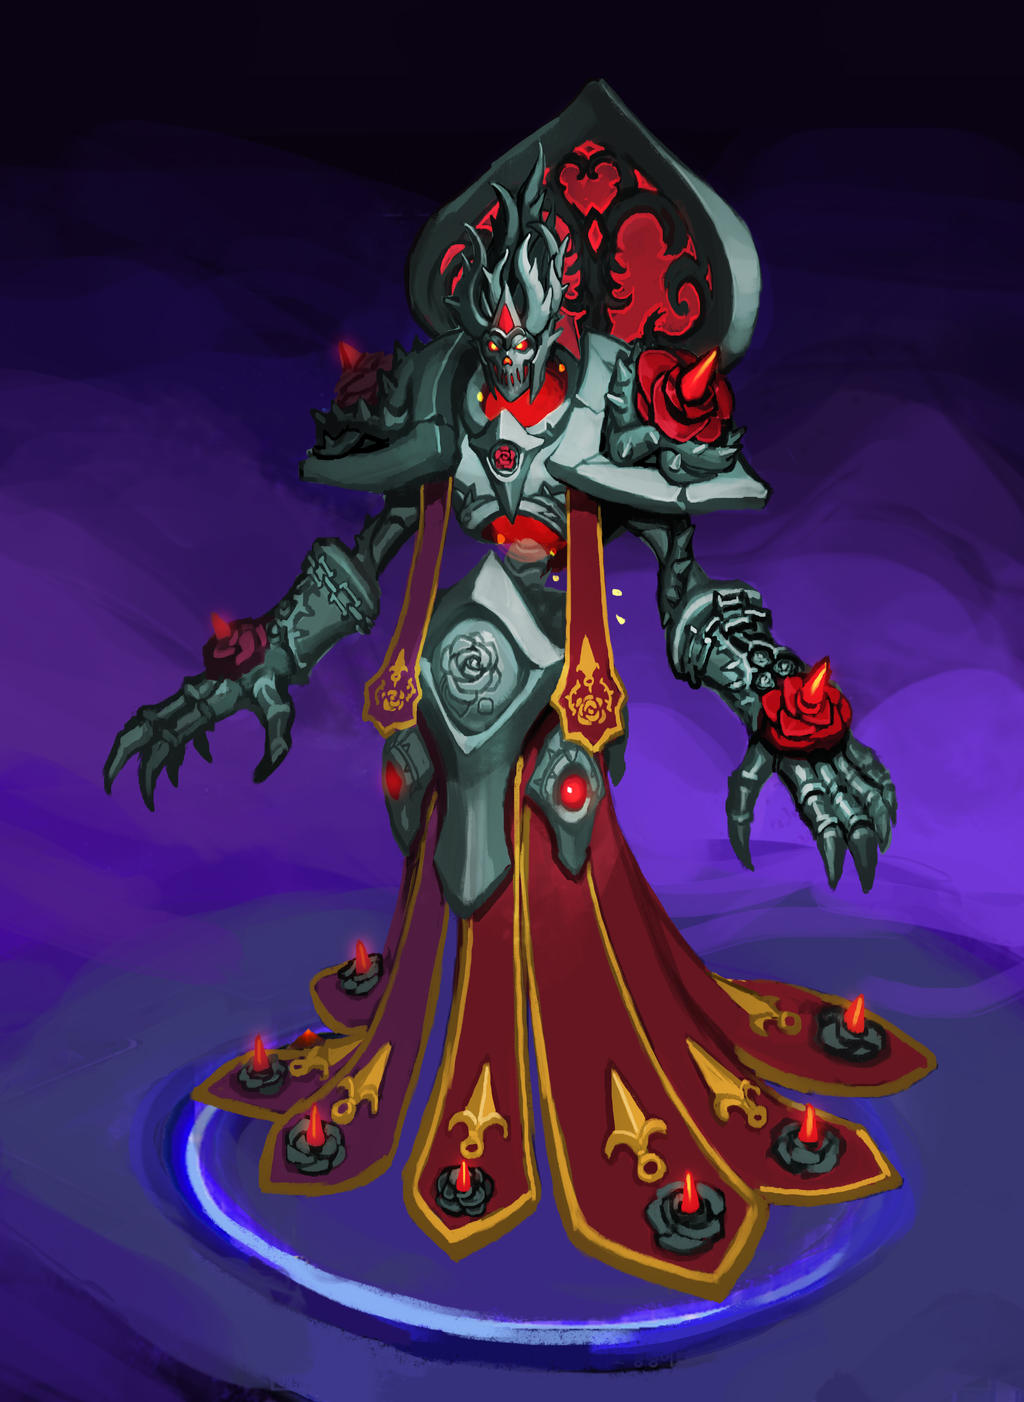 First Thorn Kel Thuzad Pose By Joseph1100 On Deviantart Kel'thuzad (ranged assassin) patch note history for heroes of the storm (hots). first thorn kel thuzad pose by